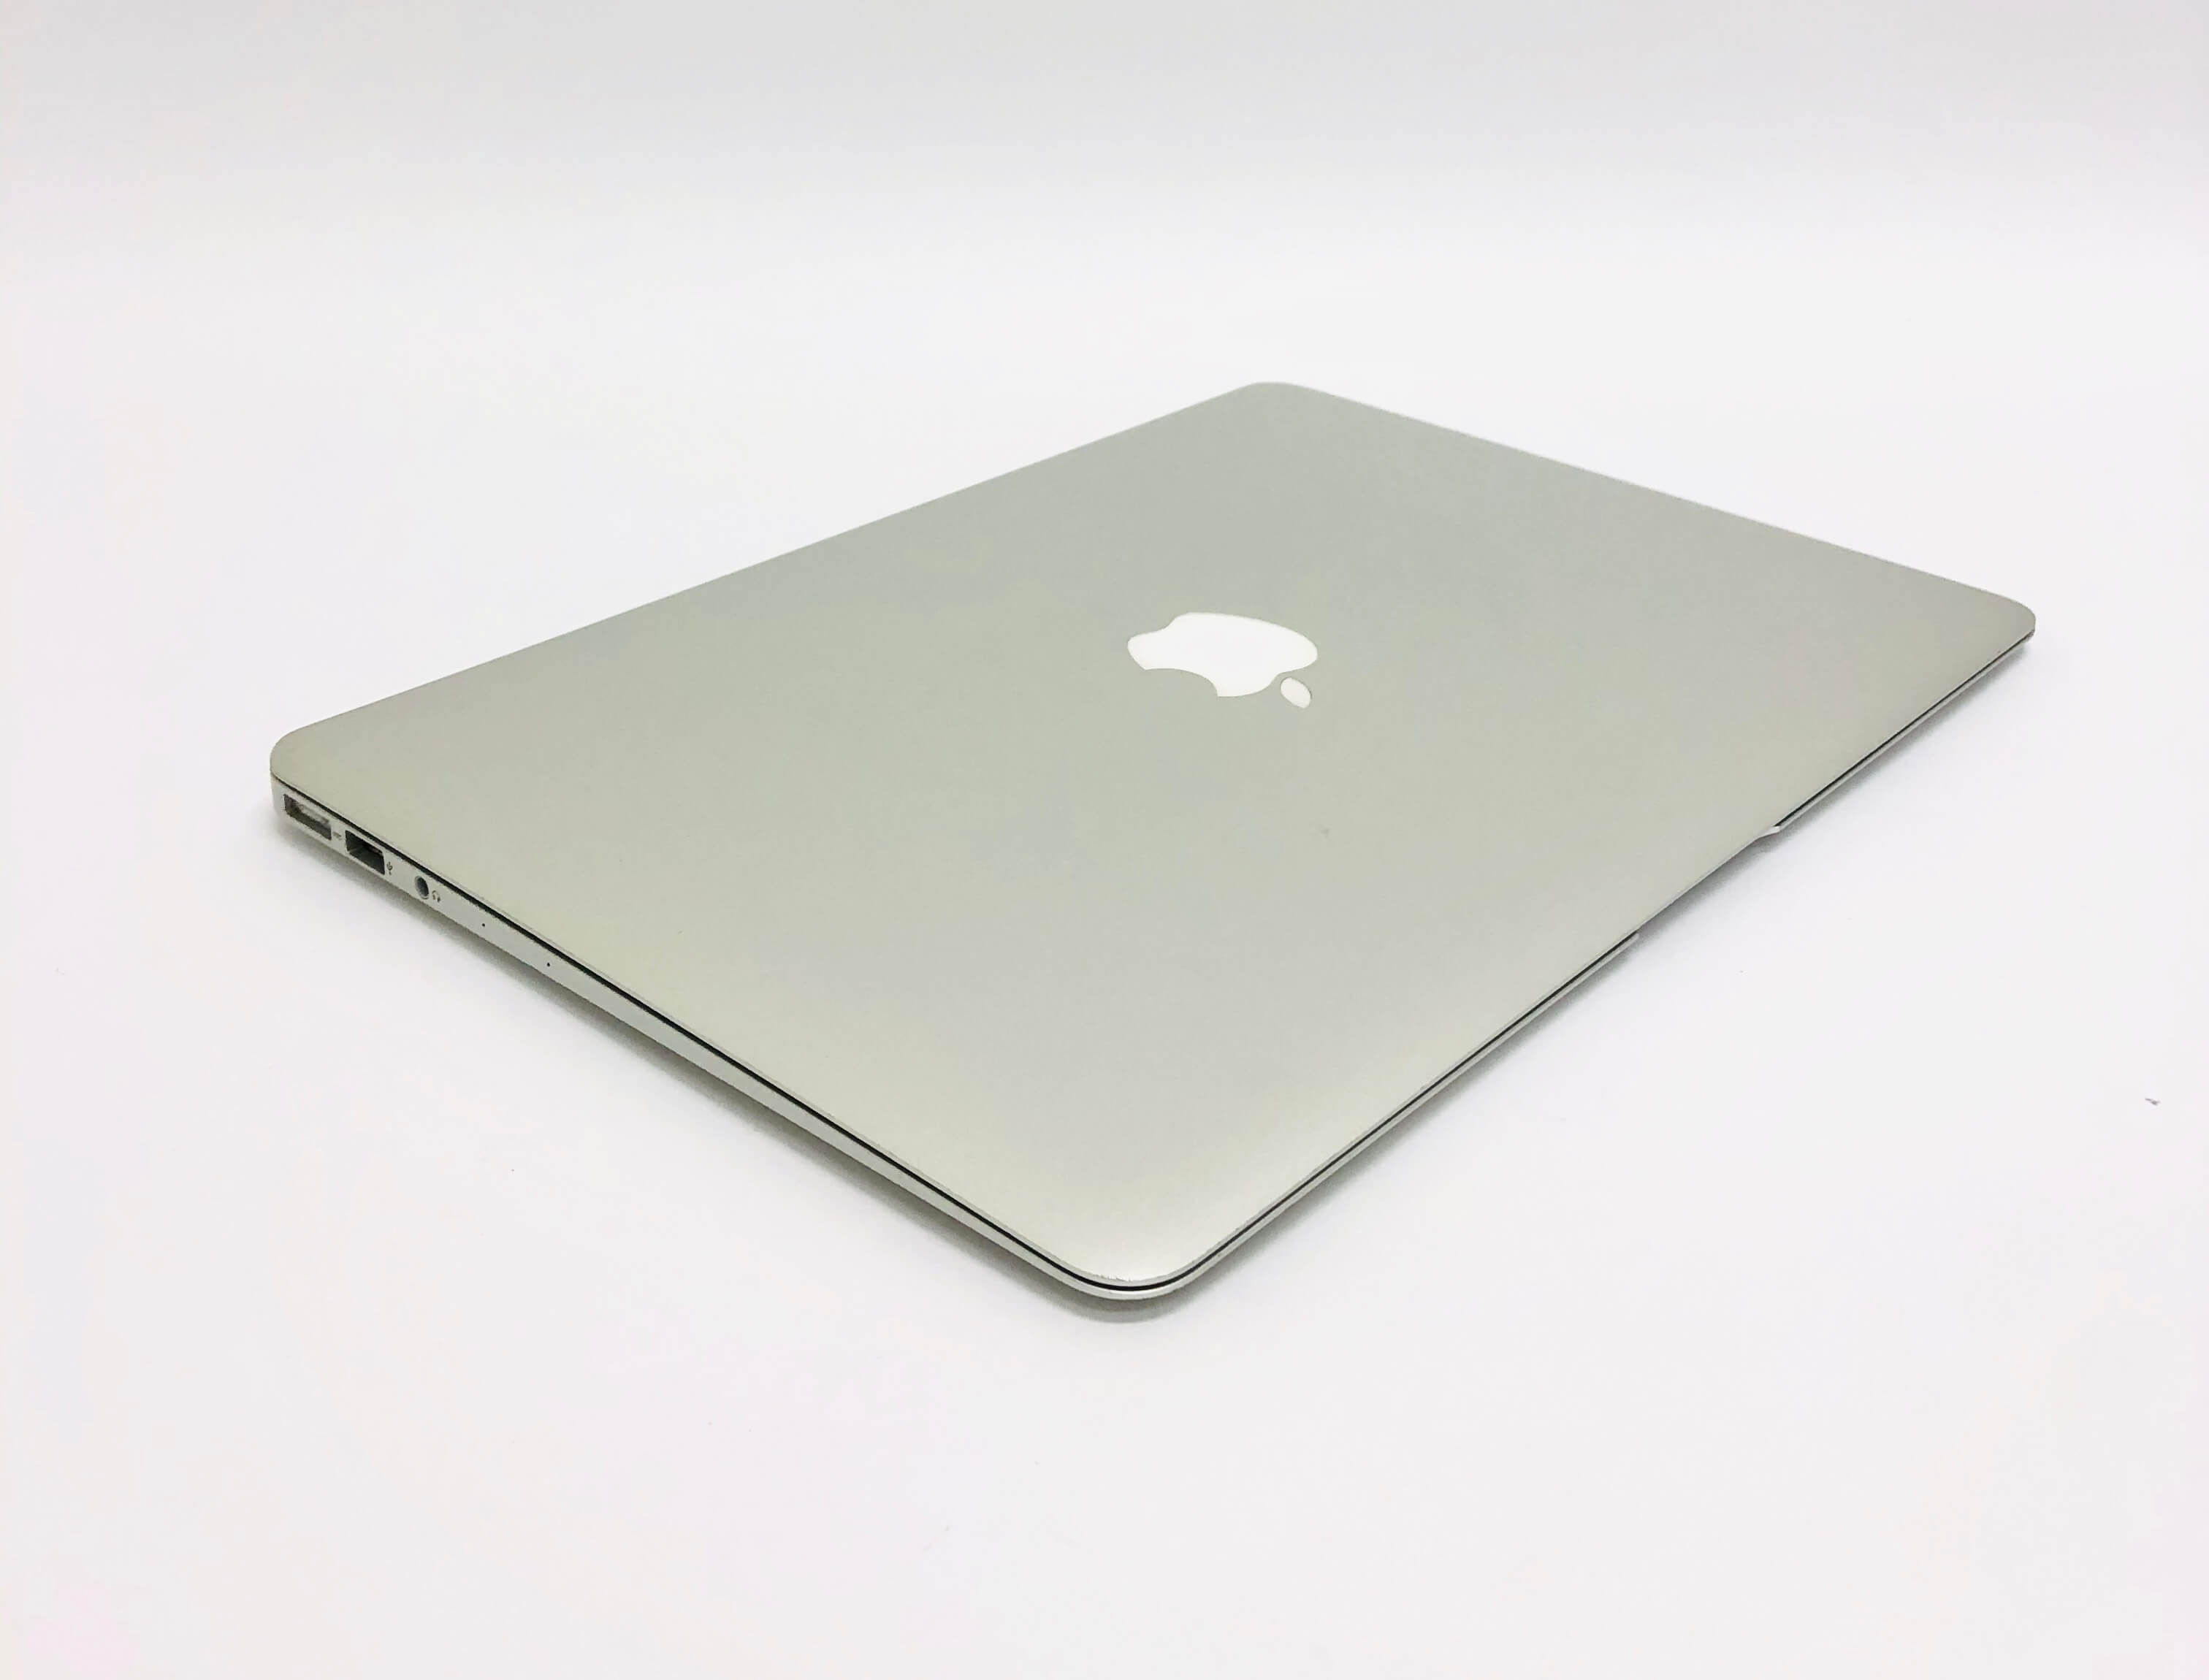 Macbook Air 13'', i5, rok 2014, 4GB RAM, 128GB SSD